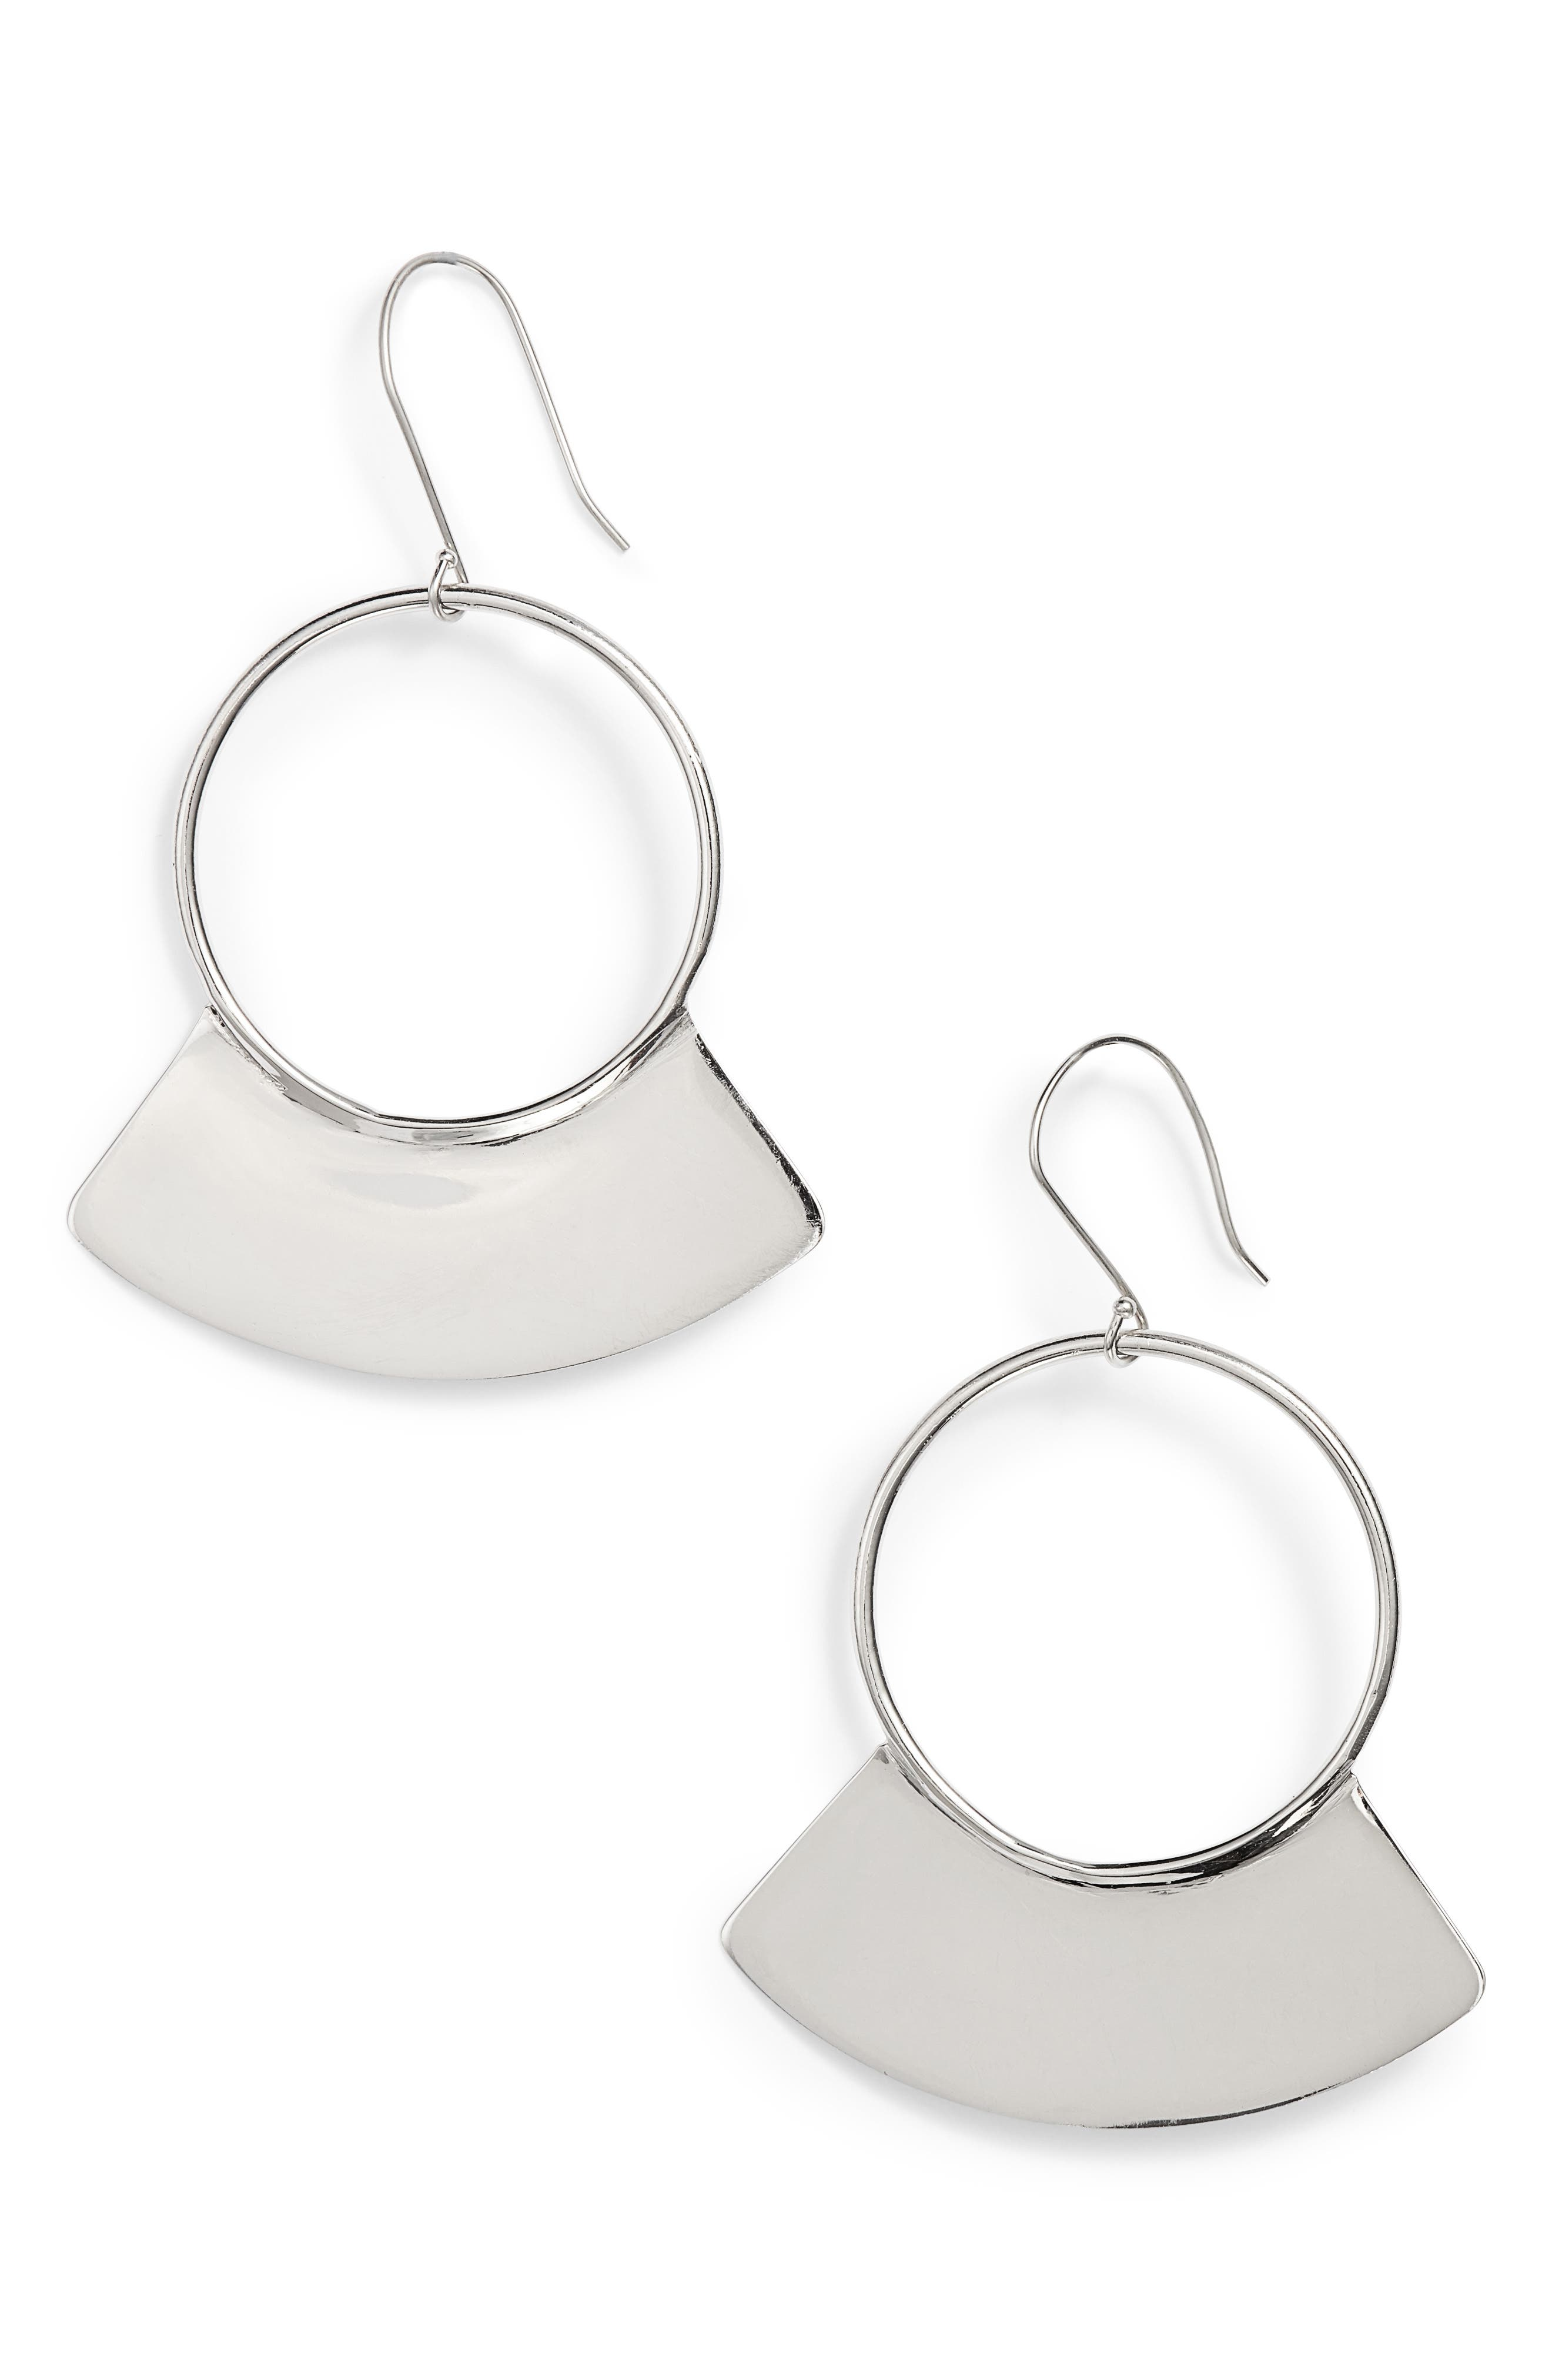 Paddle Earrings,                         Main,                         color, 040